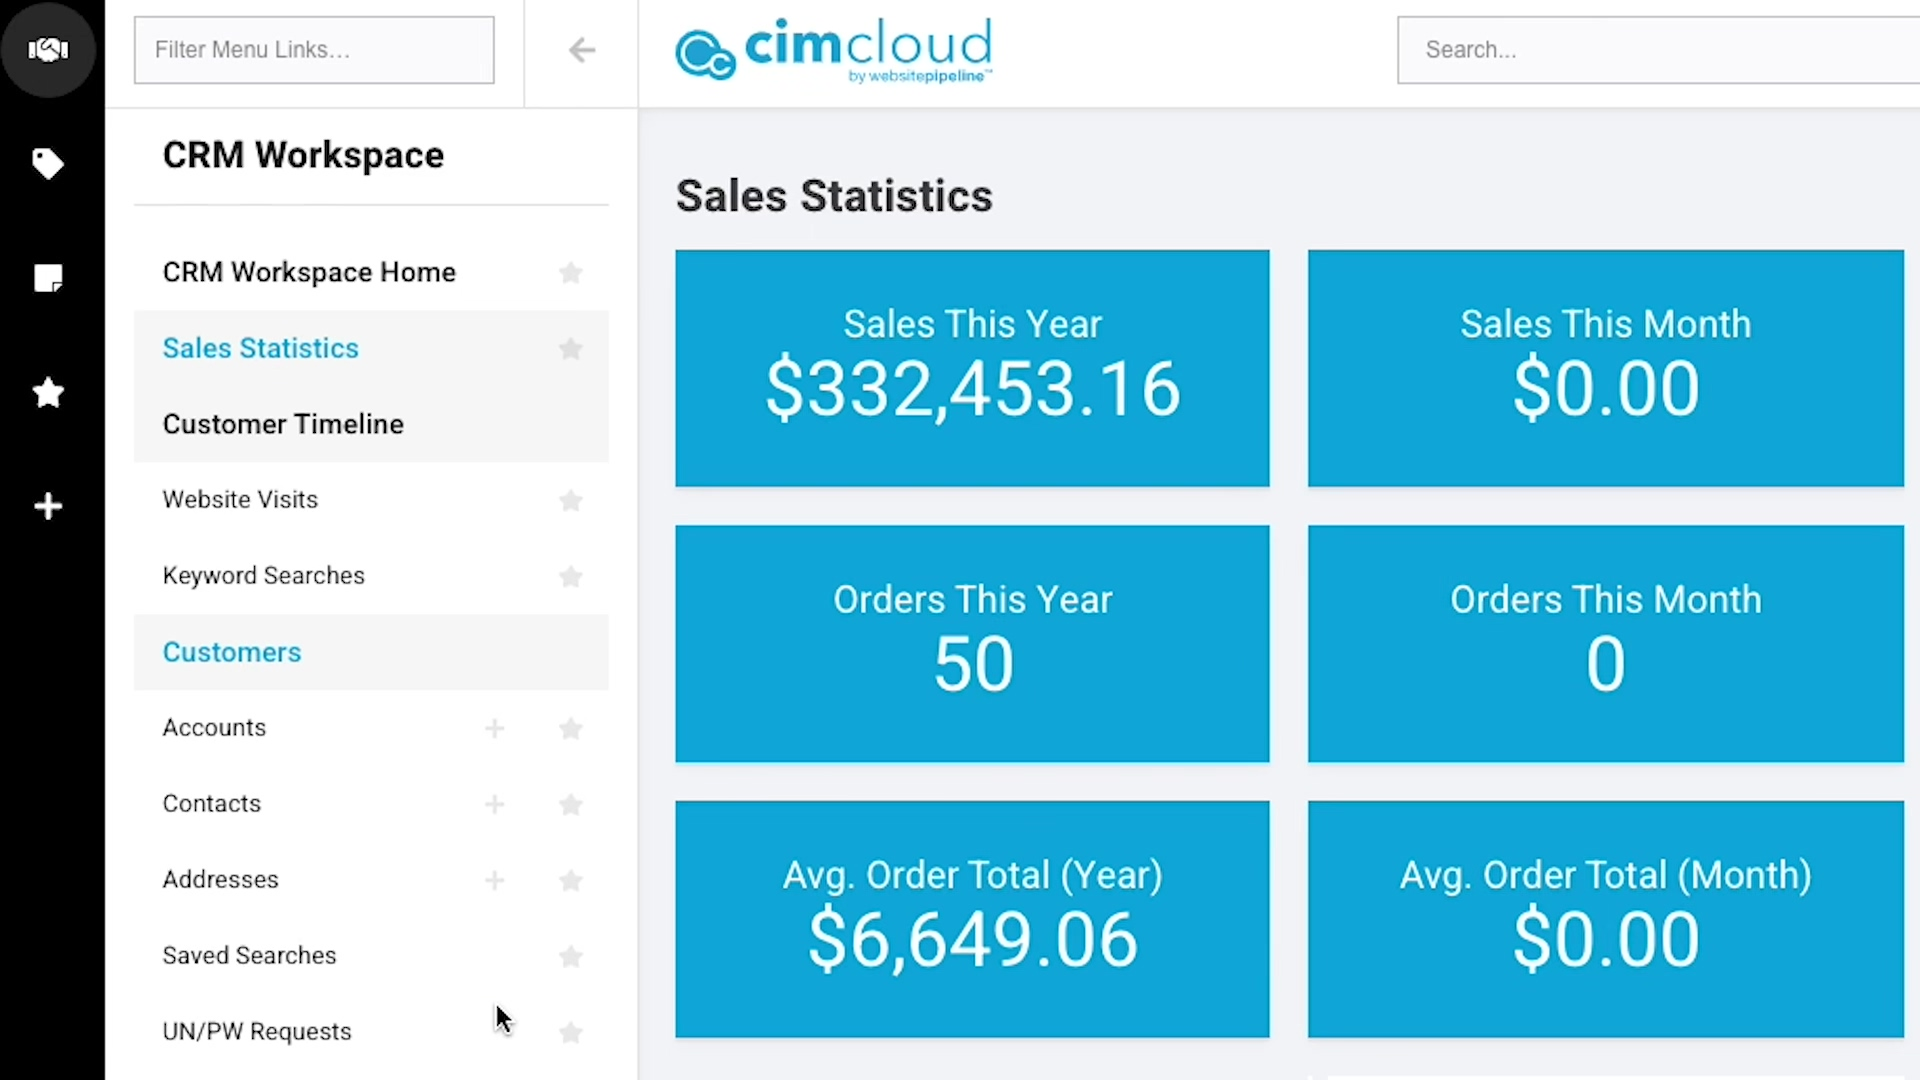 CIMcloud 2020 Select Connect Worker